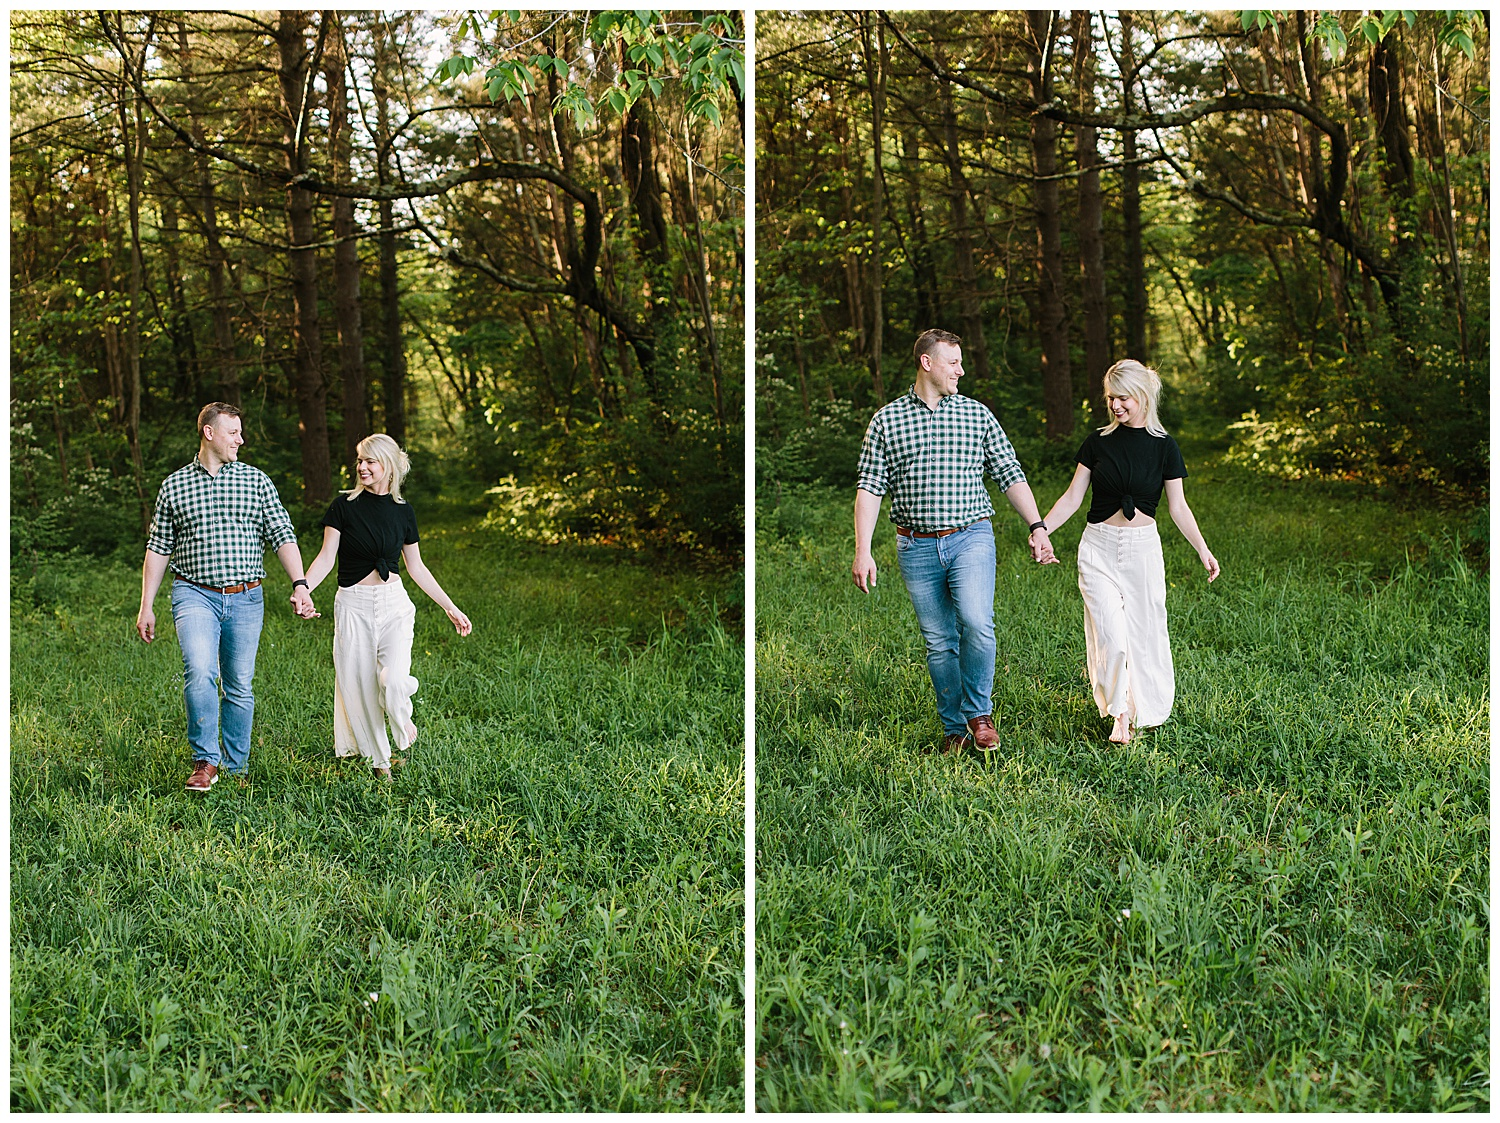 trent.and.kendra.photography.bernheim.forest.photos-22.jpg